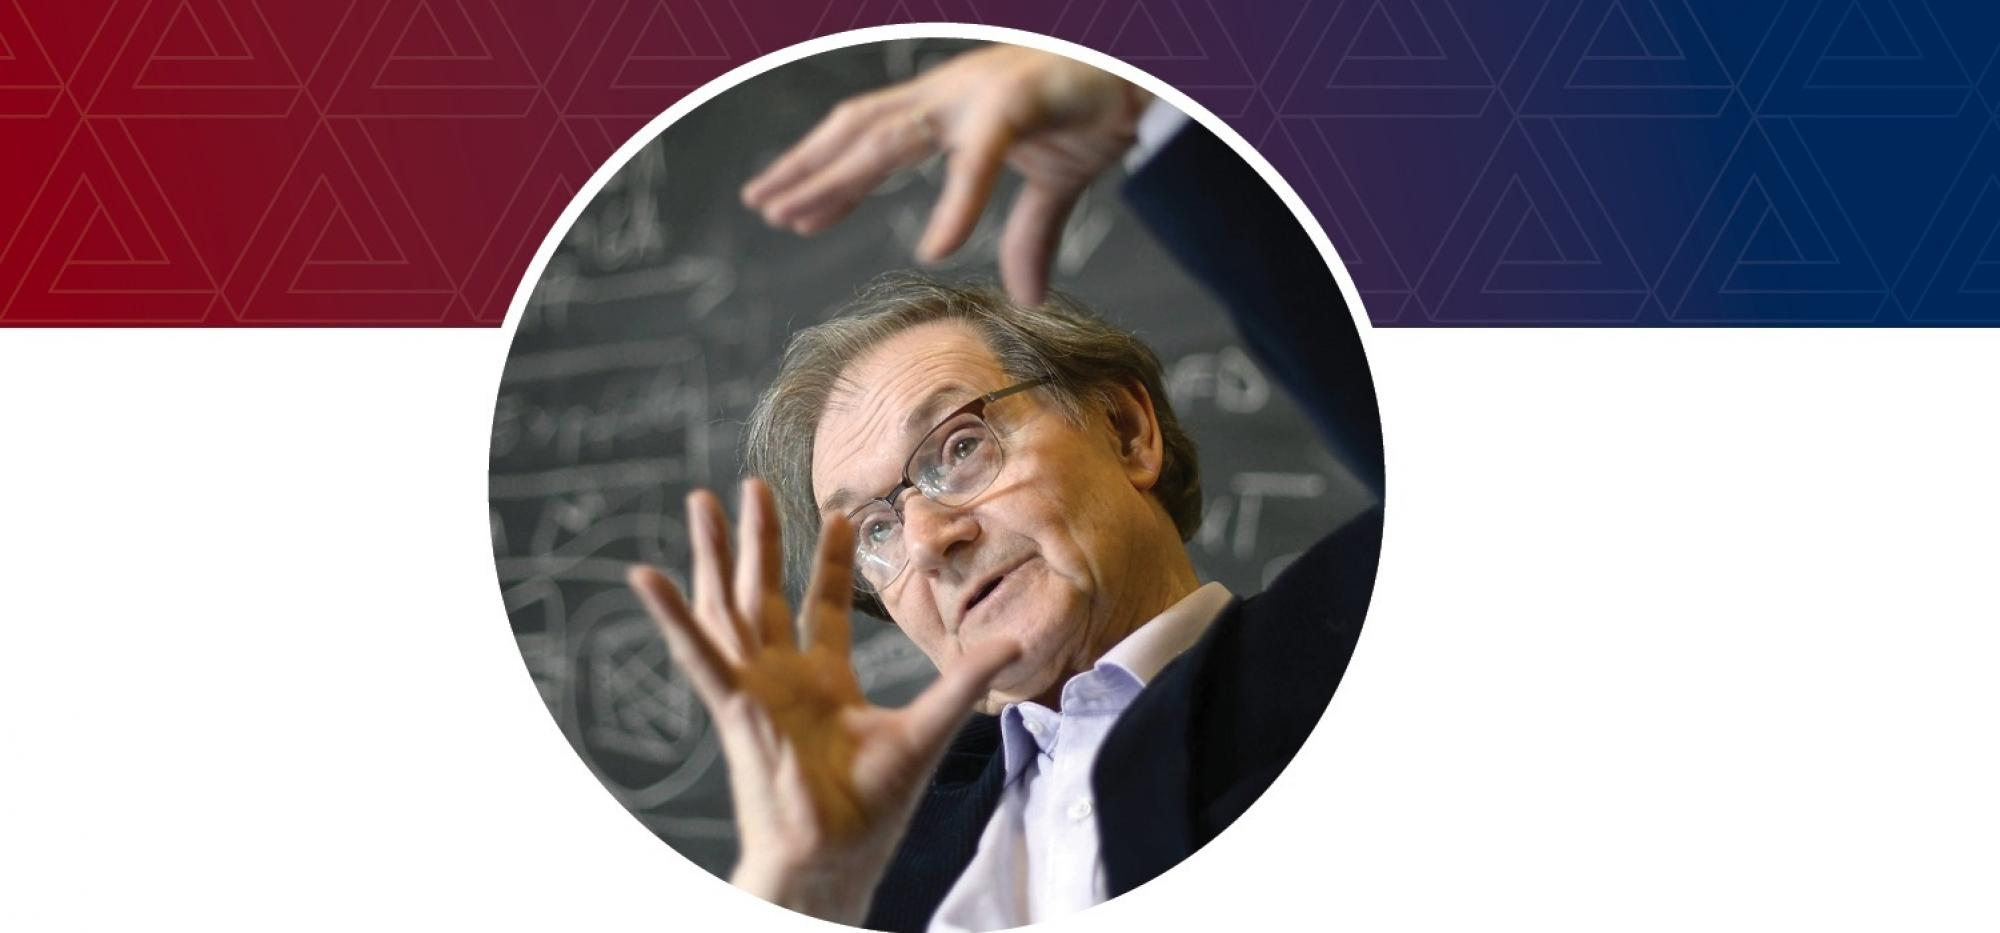 Science & Roger Penrose August 2021 - Webinar - The Science of Consciousness